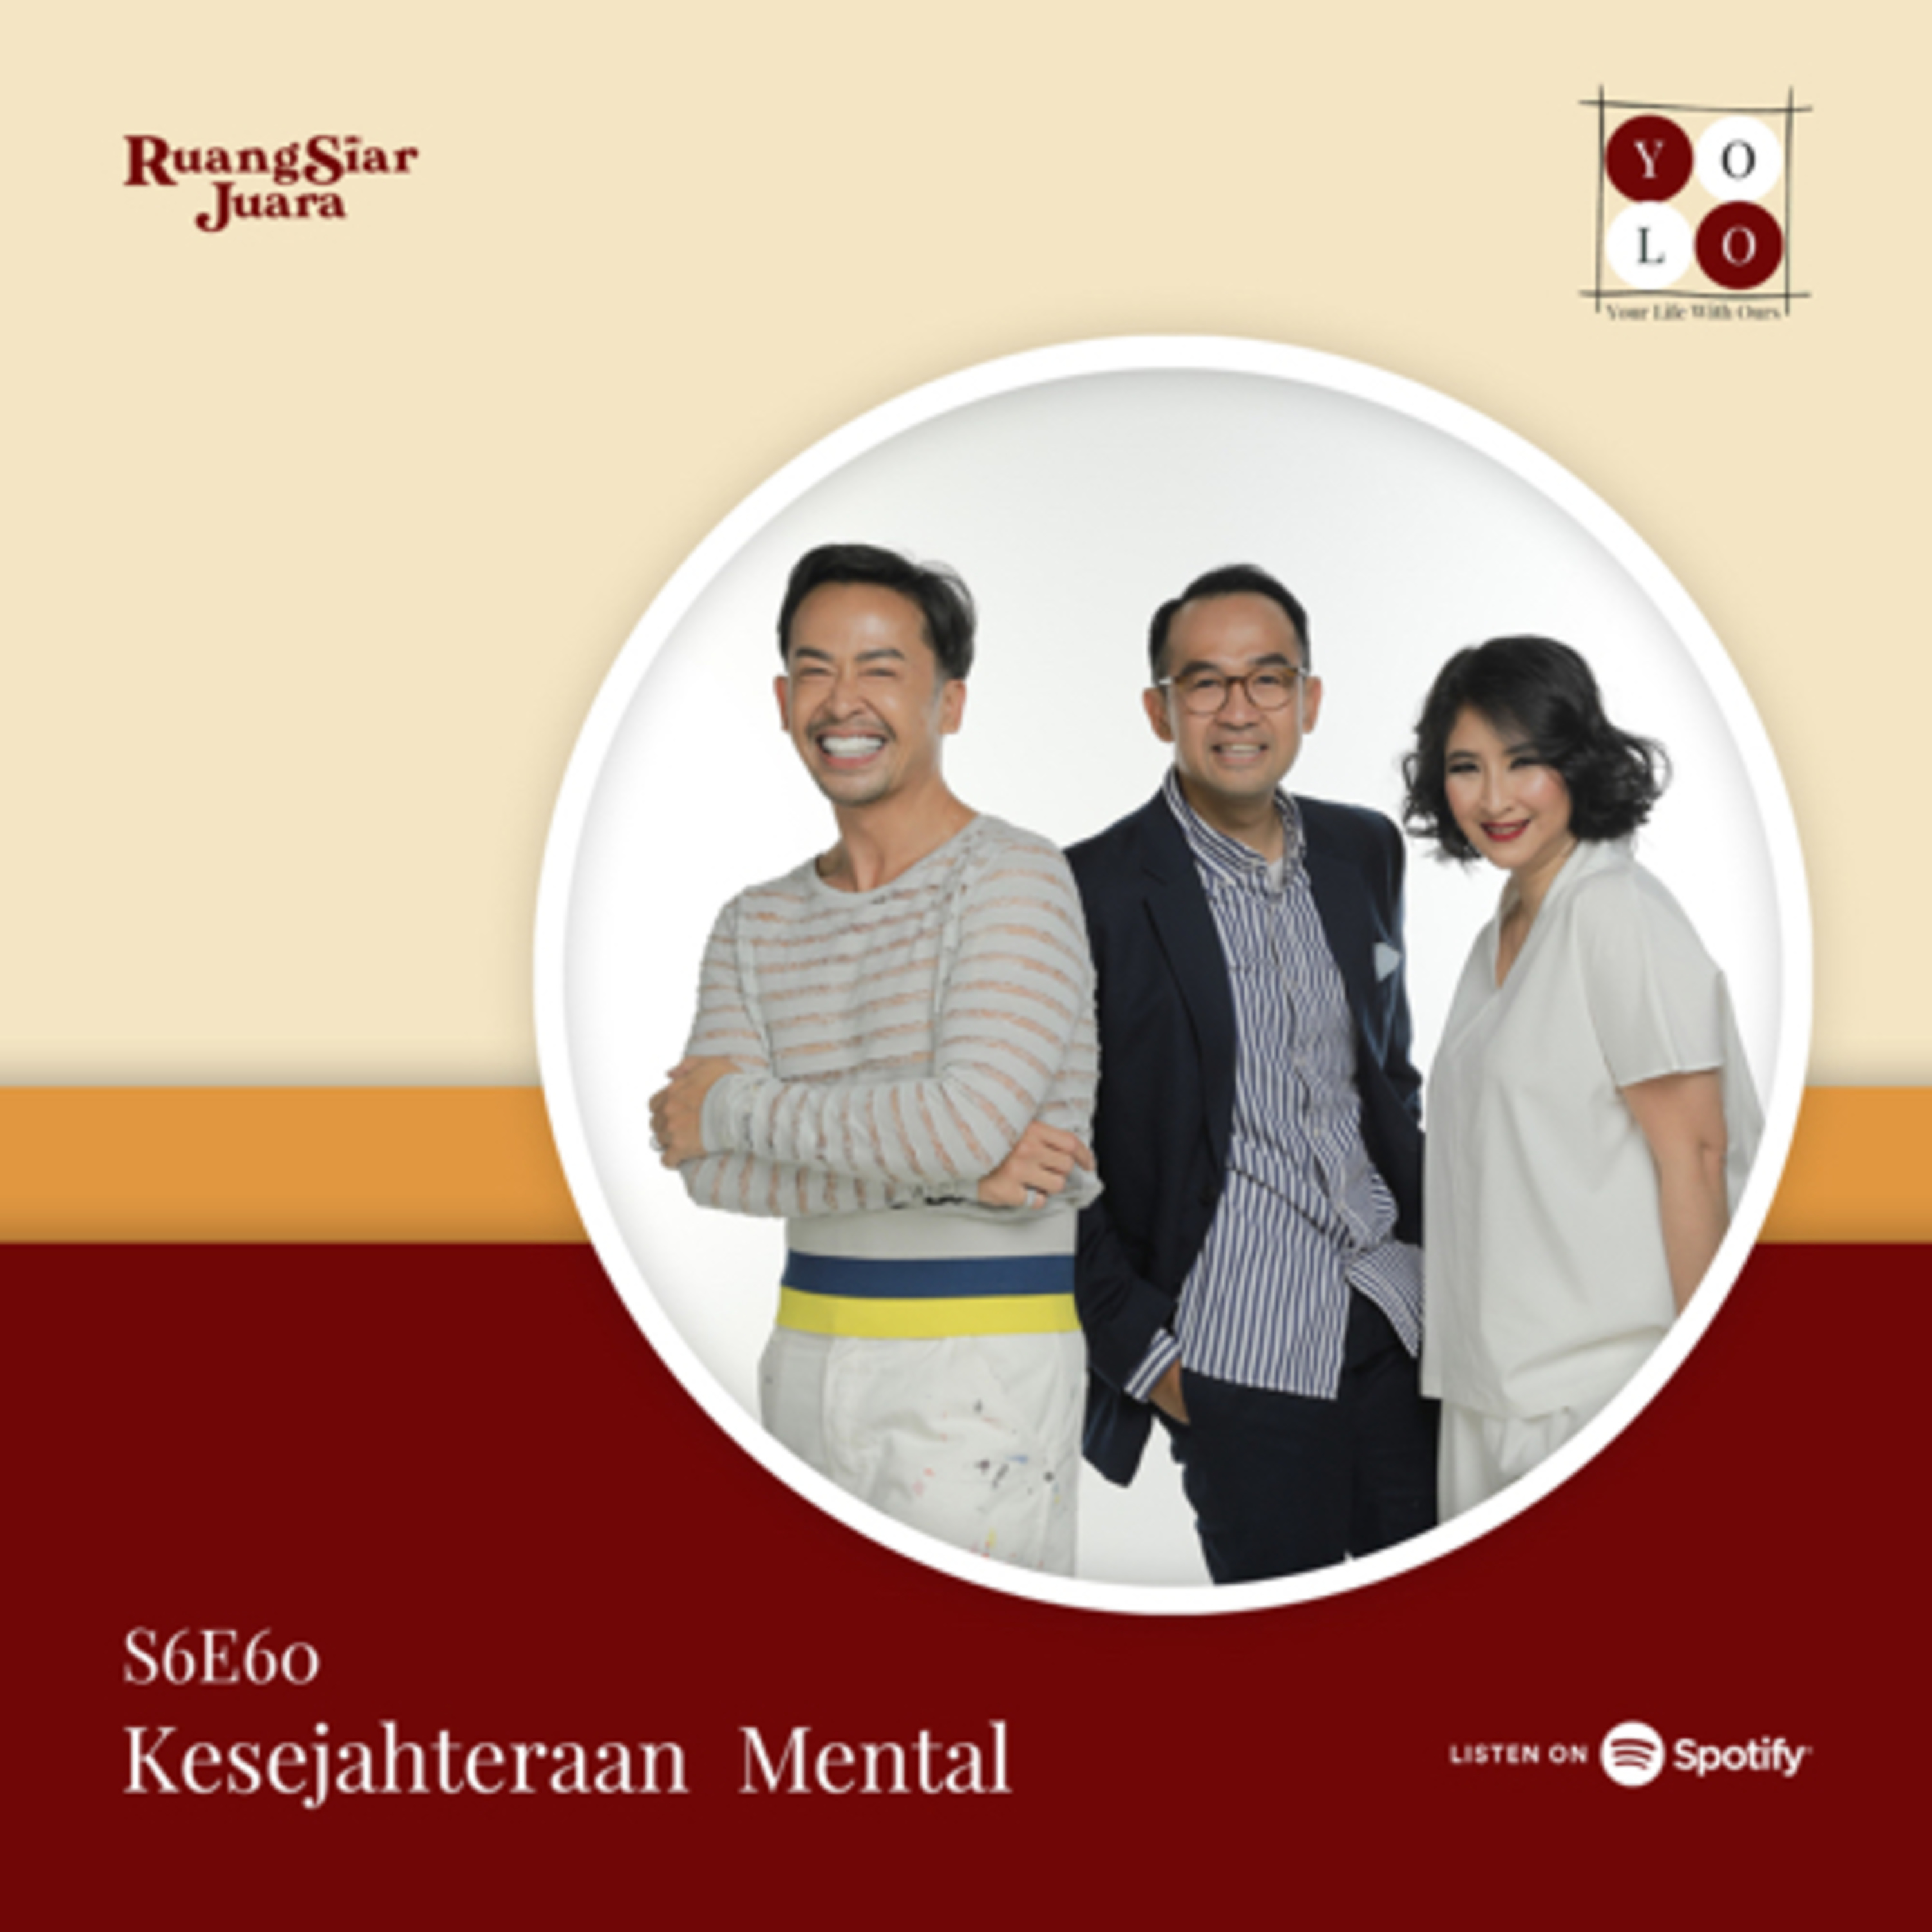 YOLO (YOur Life with Ours!) - S6E60 Kesejahteraan Mental